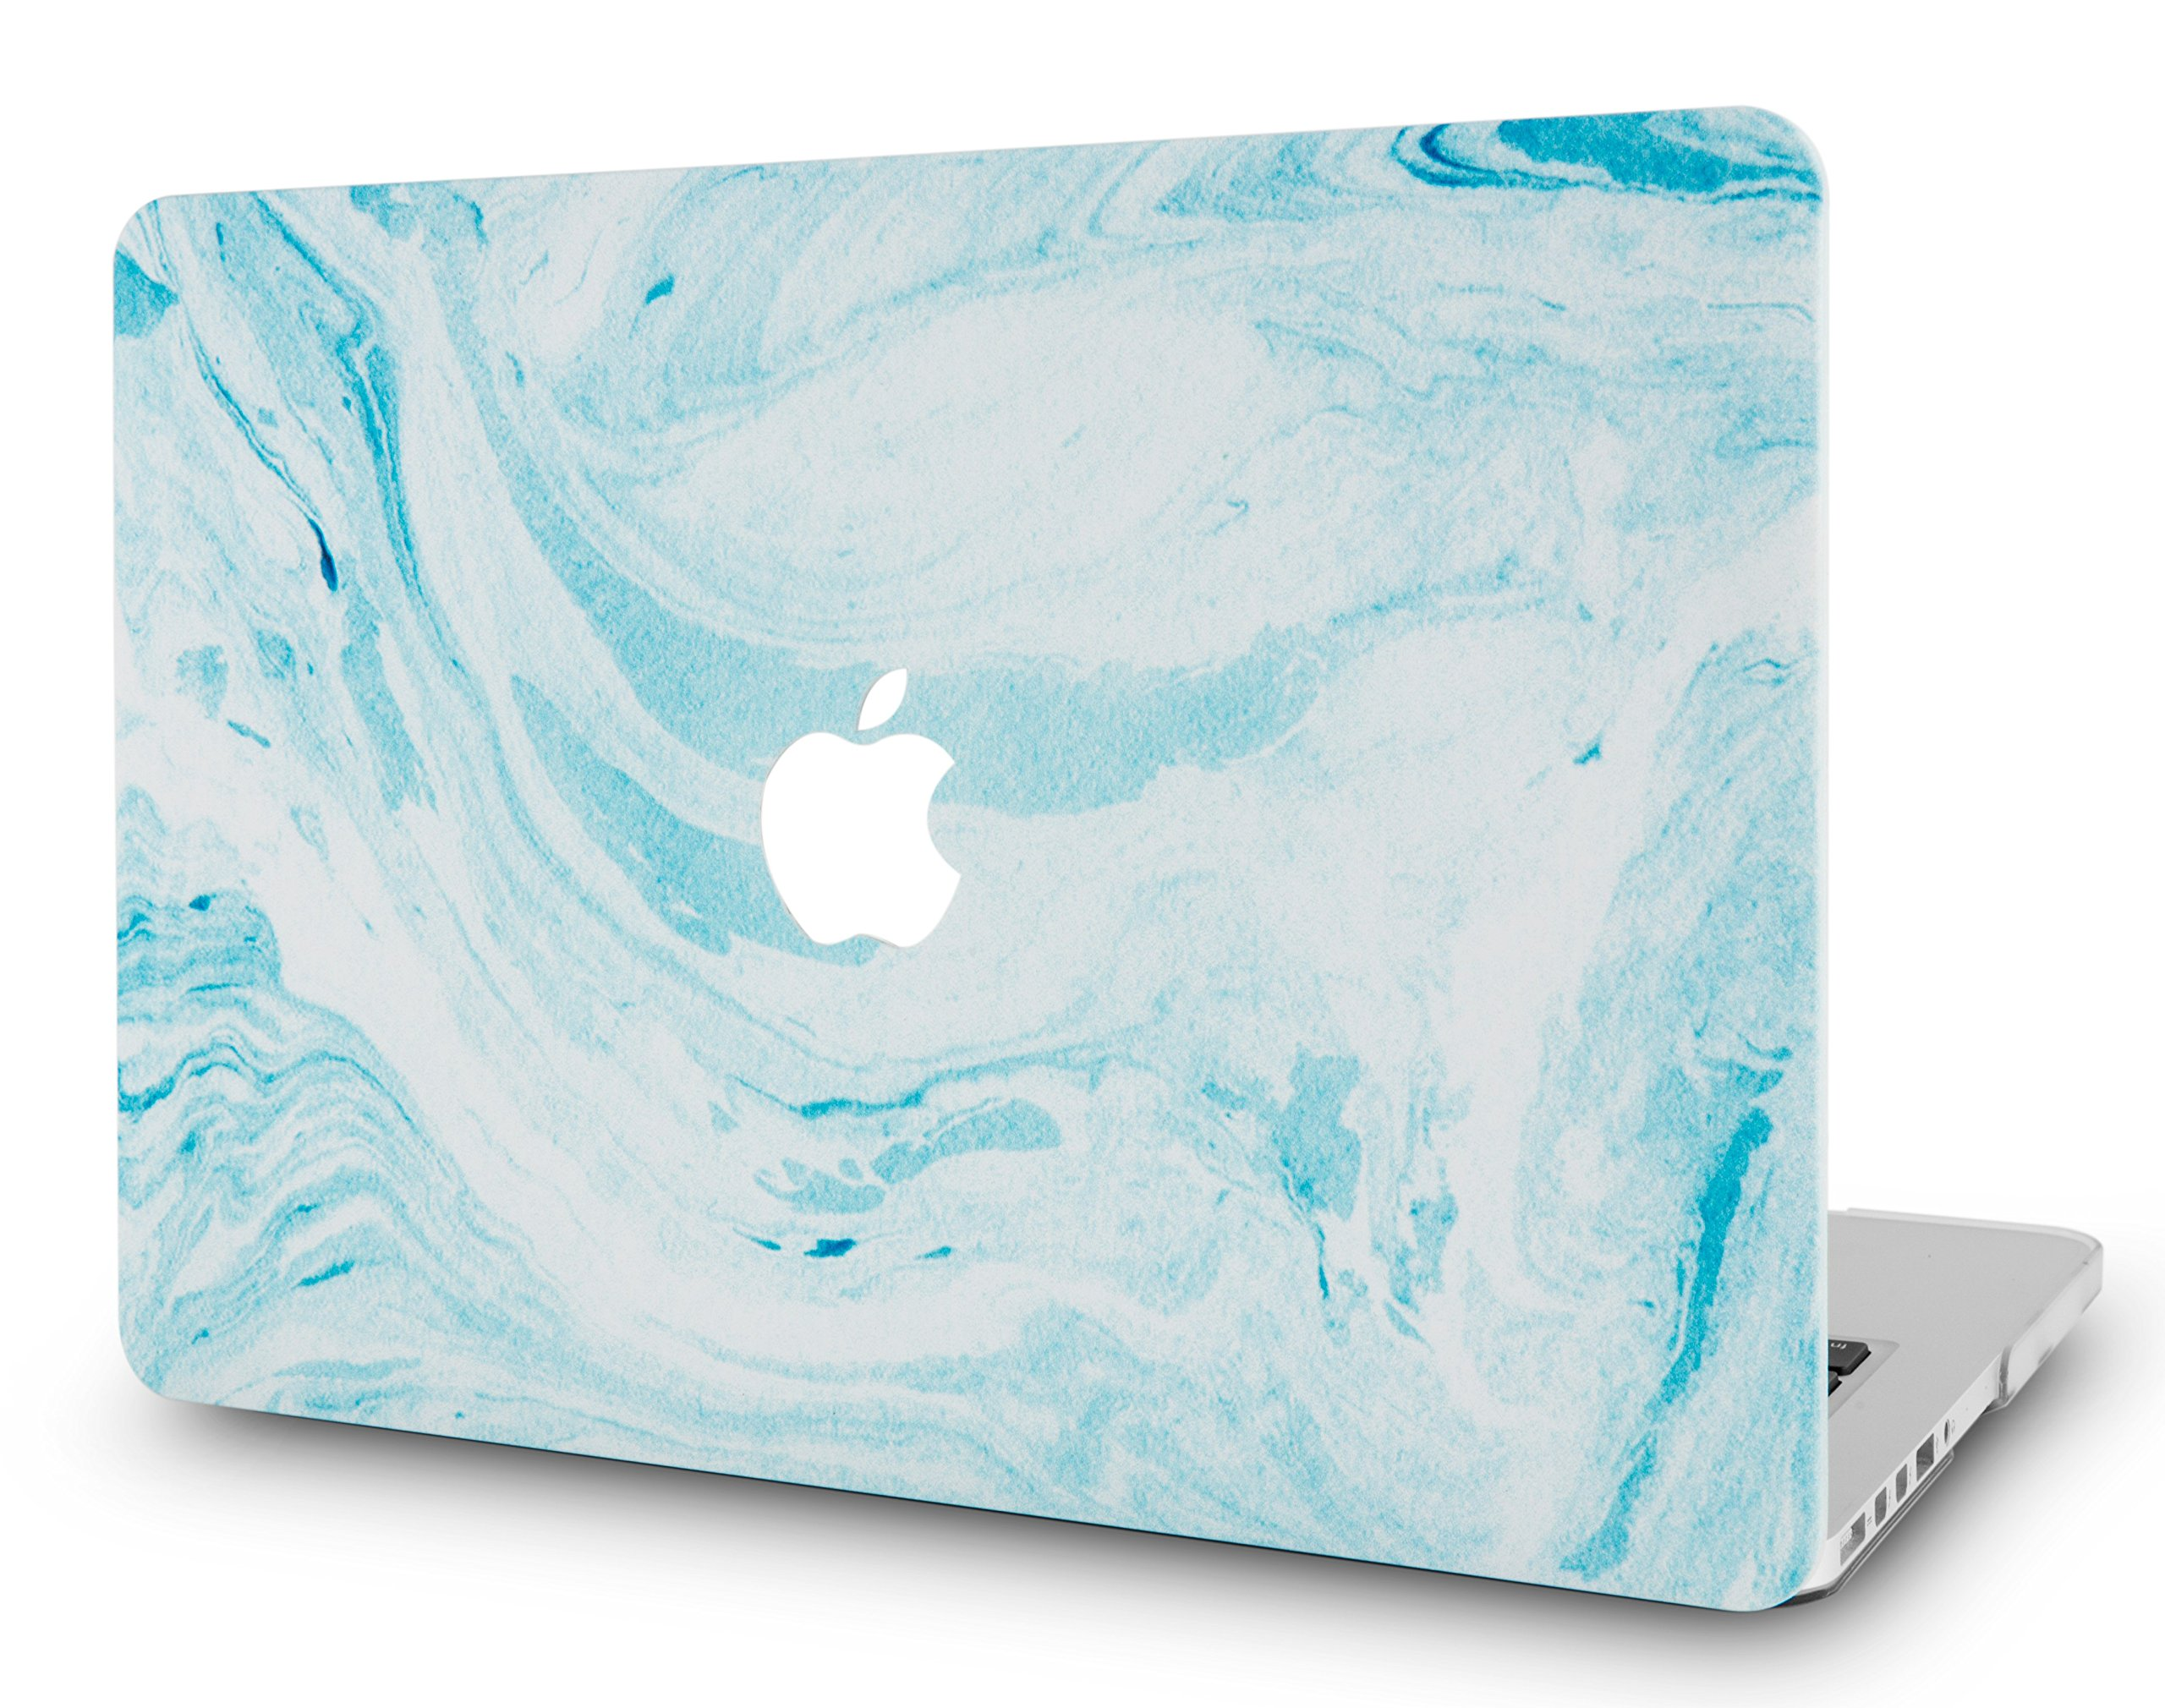 LuvCaseLaptopCaseforMacBookAir 13 Inch A1466 / A1369 (No Touch ID)RubberizedPlasticHardShellCover (Blue White Marble 1)